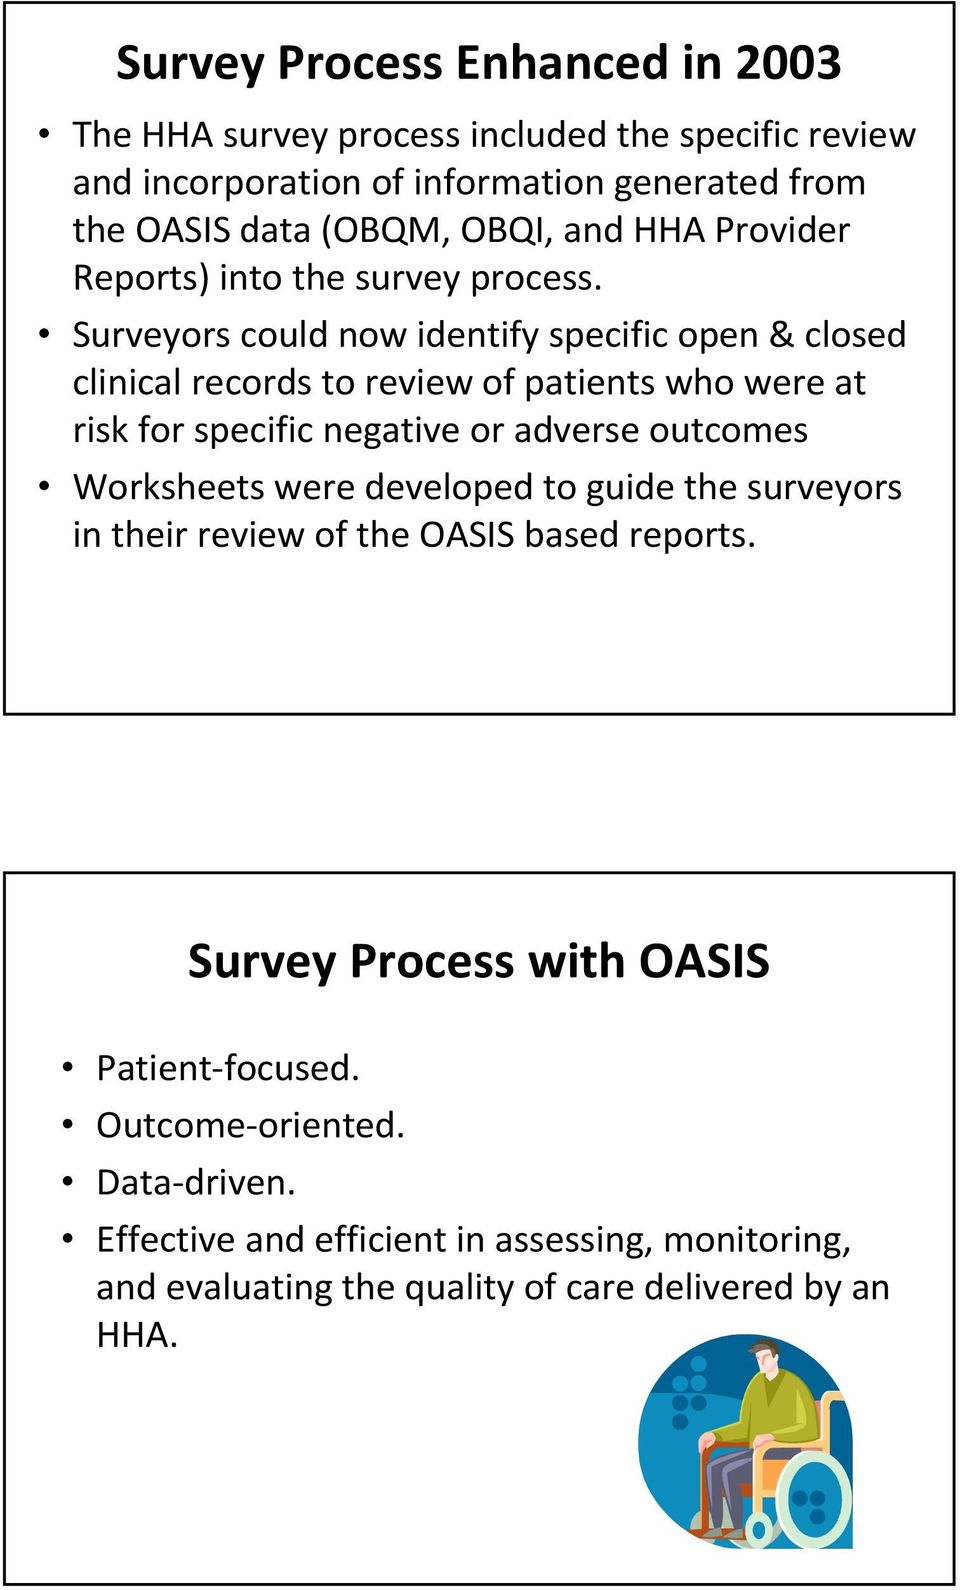 Surveyors could now identify specific open & closed clinical records to review of patients who were at risk for specific negative or adverse outcomes